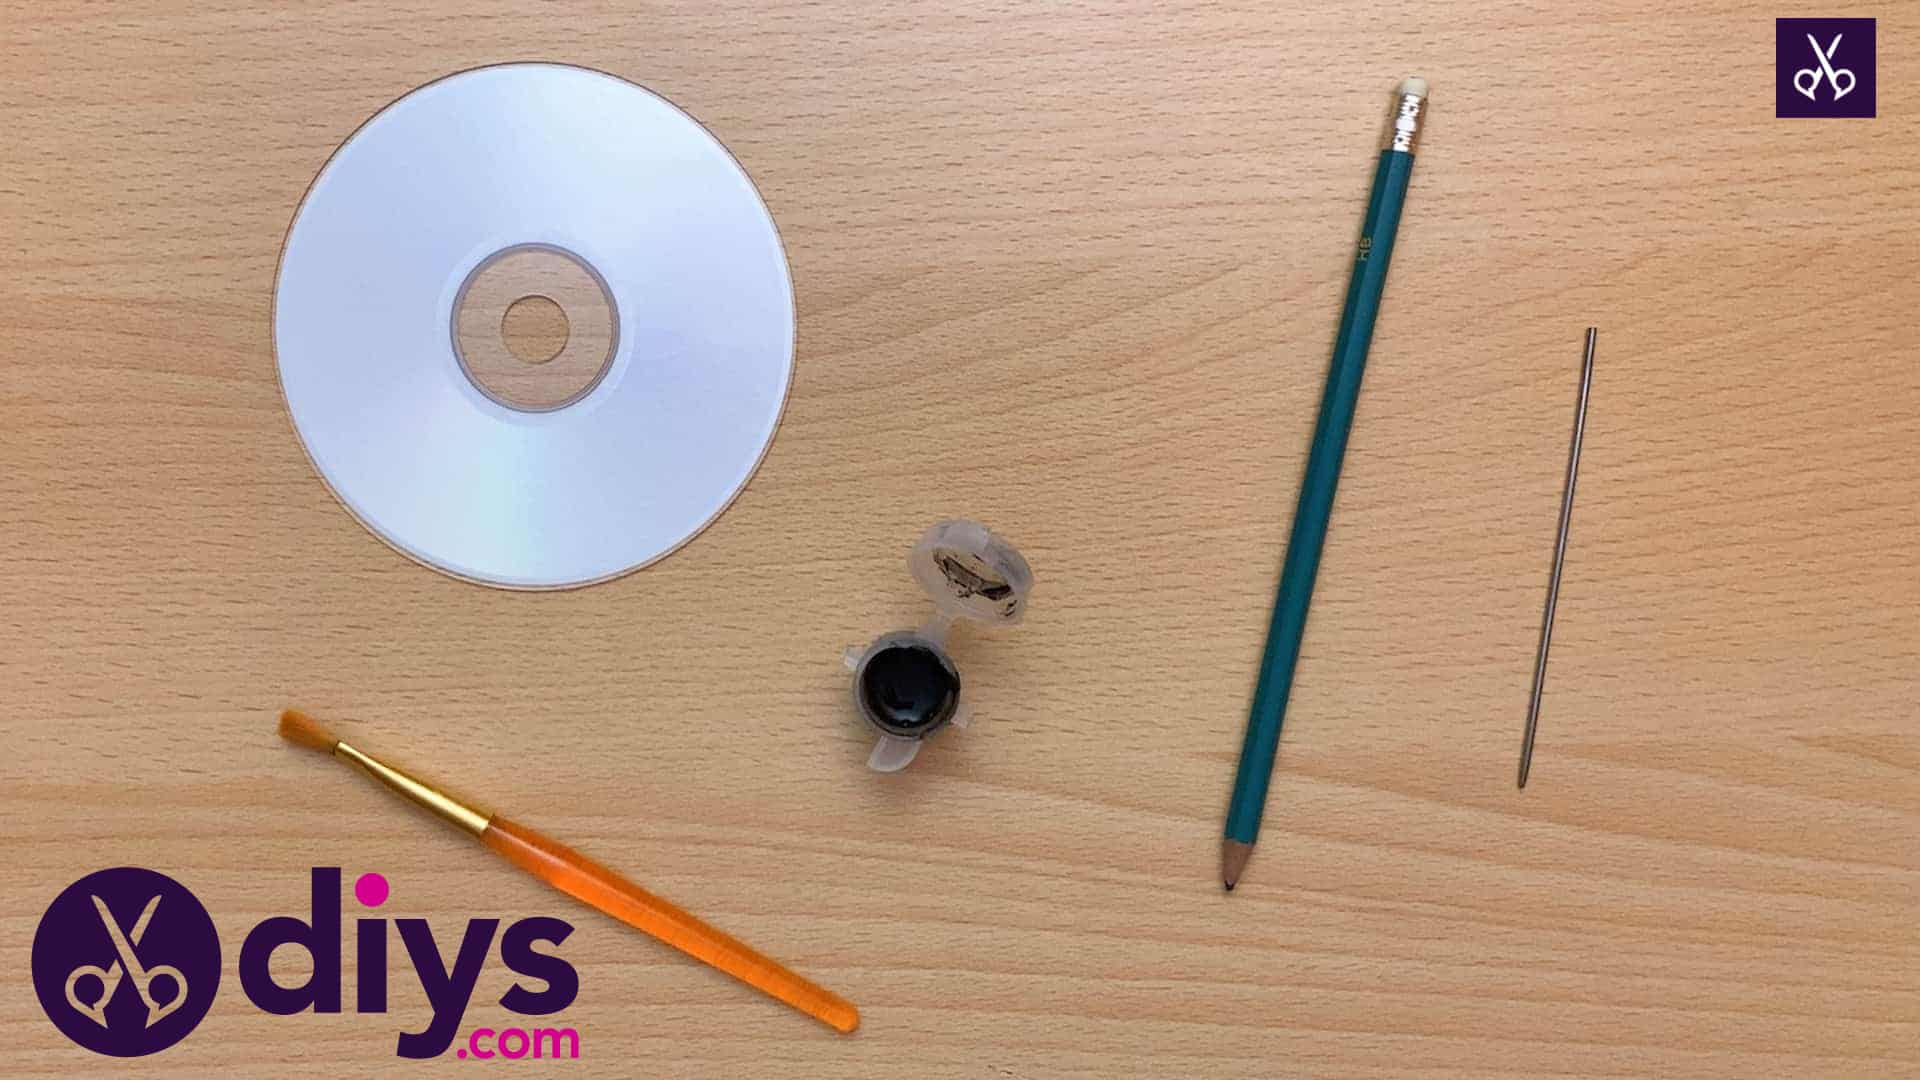 How to make recycled cd art step by step